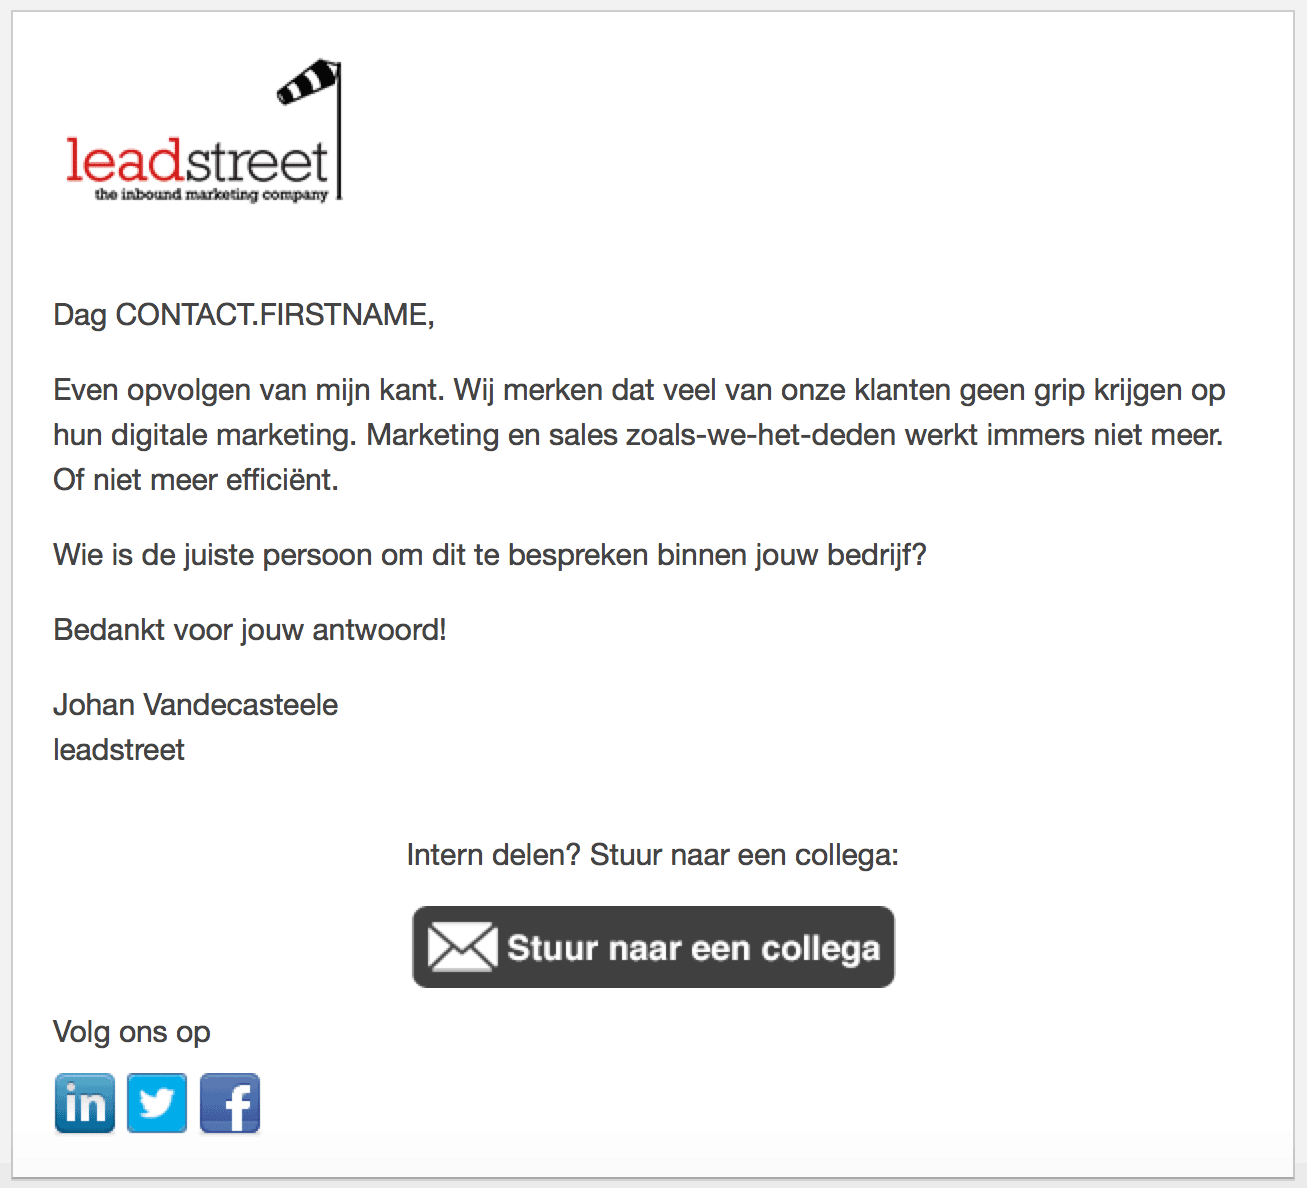 drip-campagne-kwalificeer-of-je-leads-salesklaar-zijn-mail-2.png